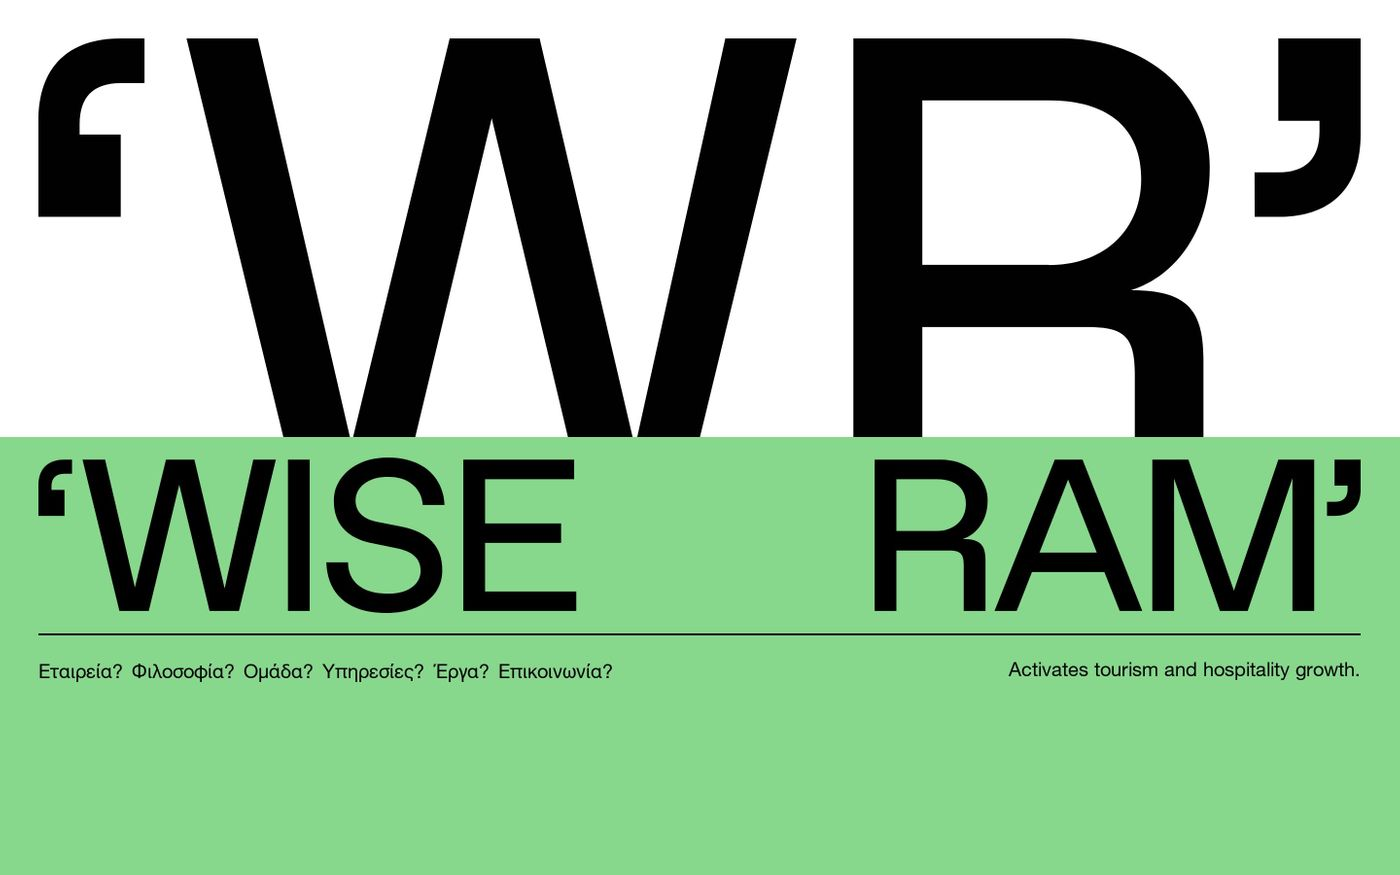 Screenshot of The Wise Ram - The Wise Ram website